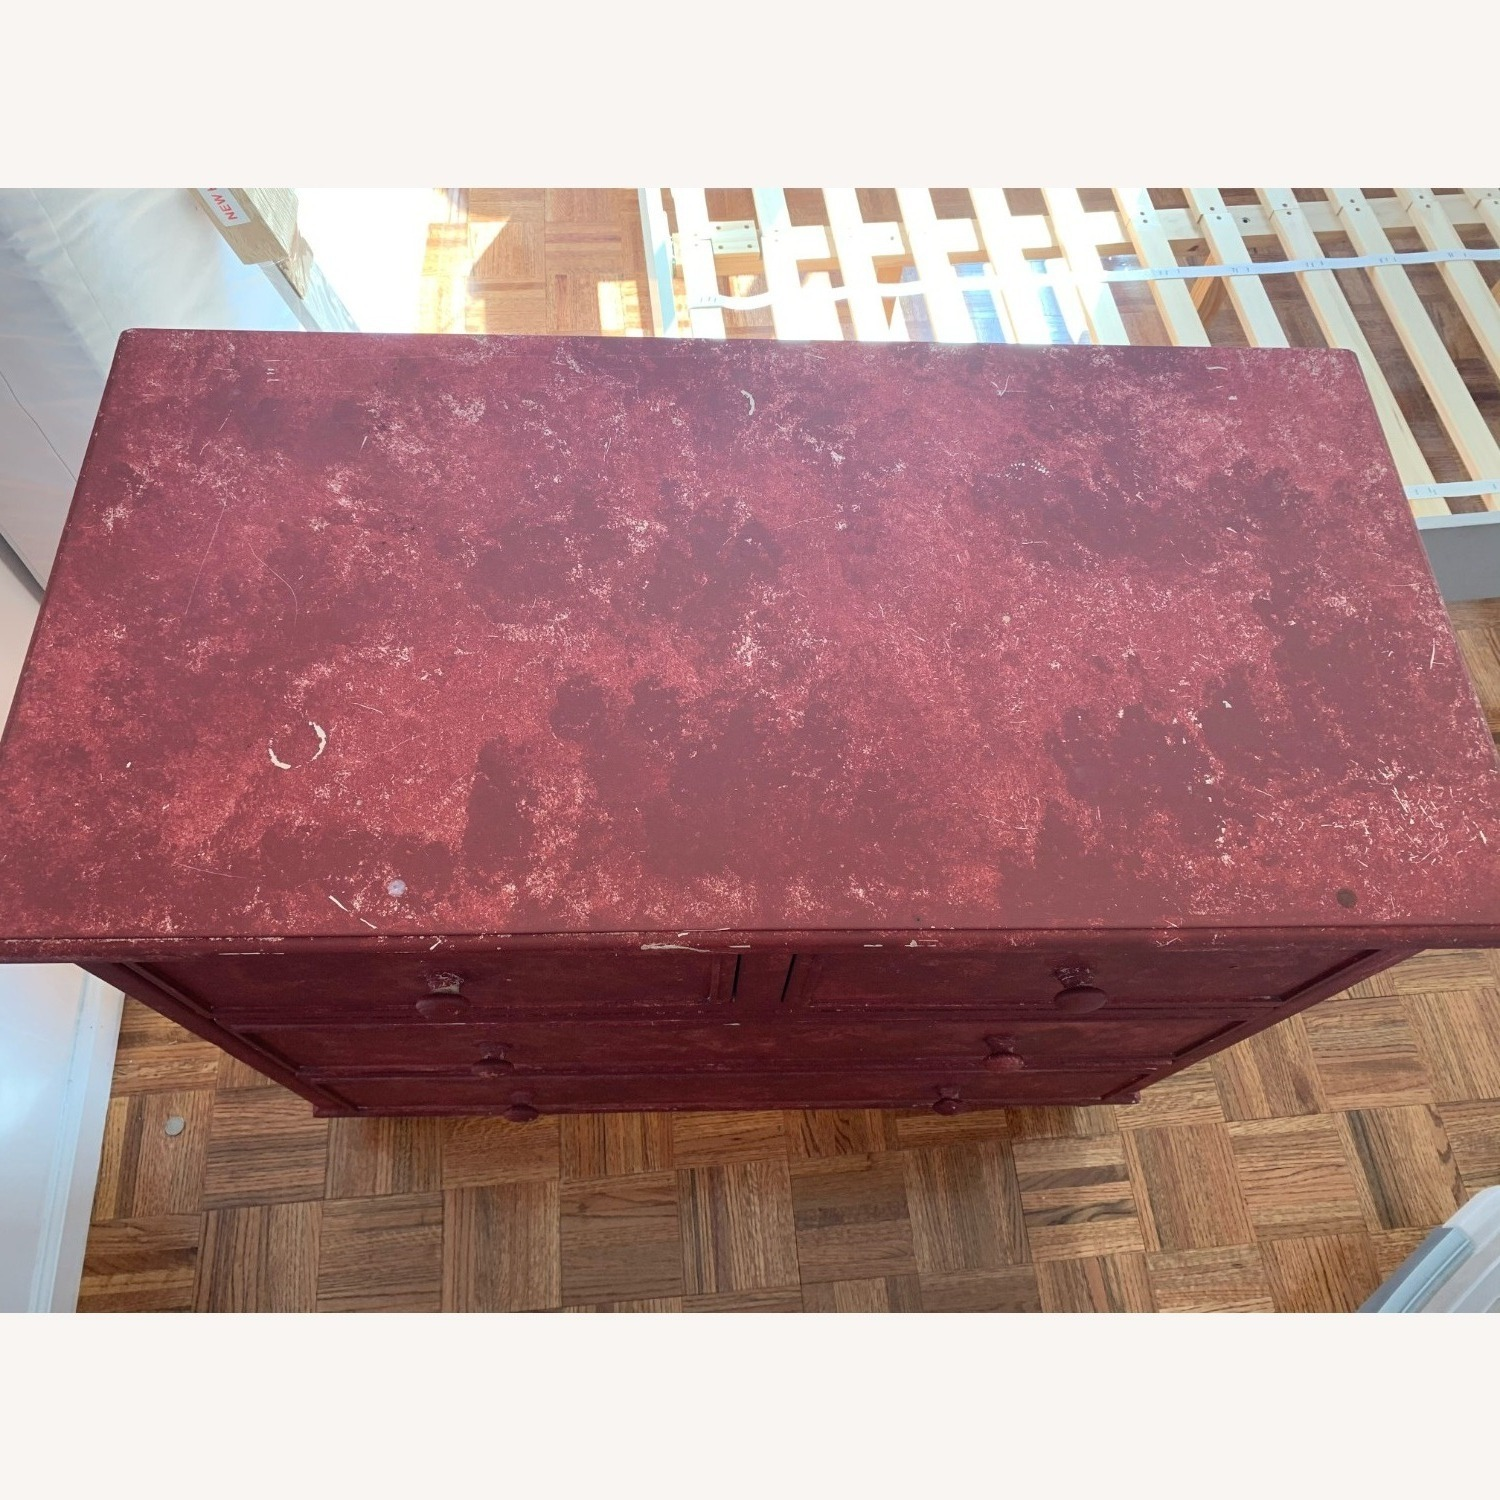 Pottery Barn Dresser (Painted) - image-5